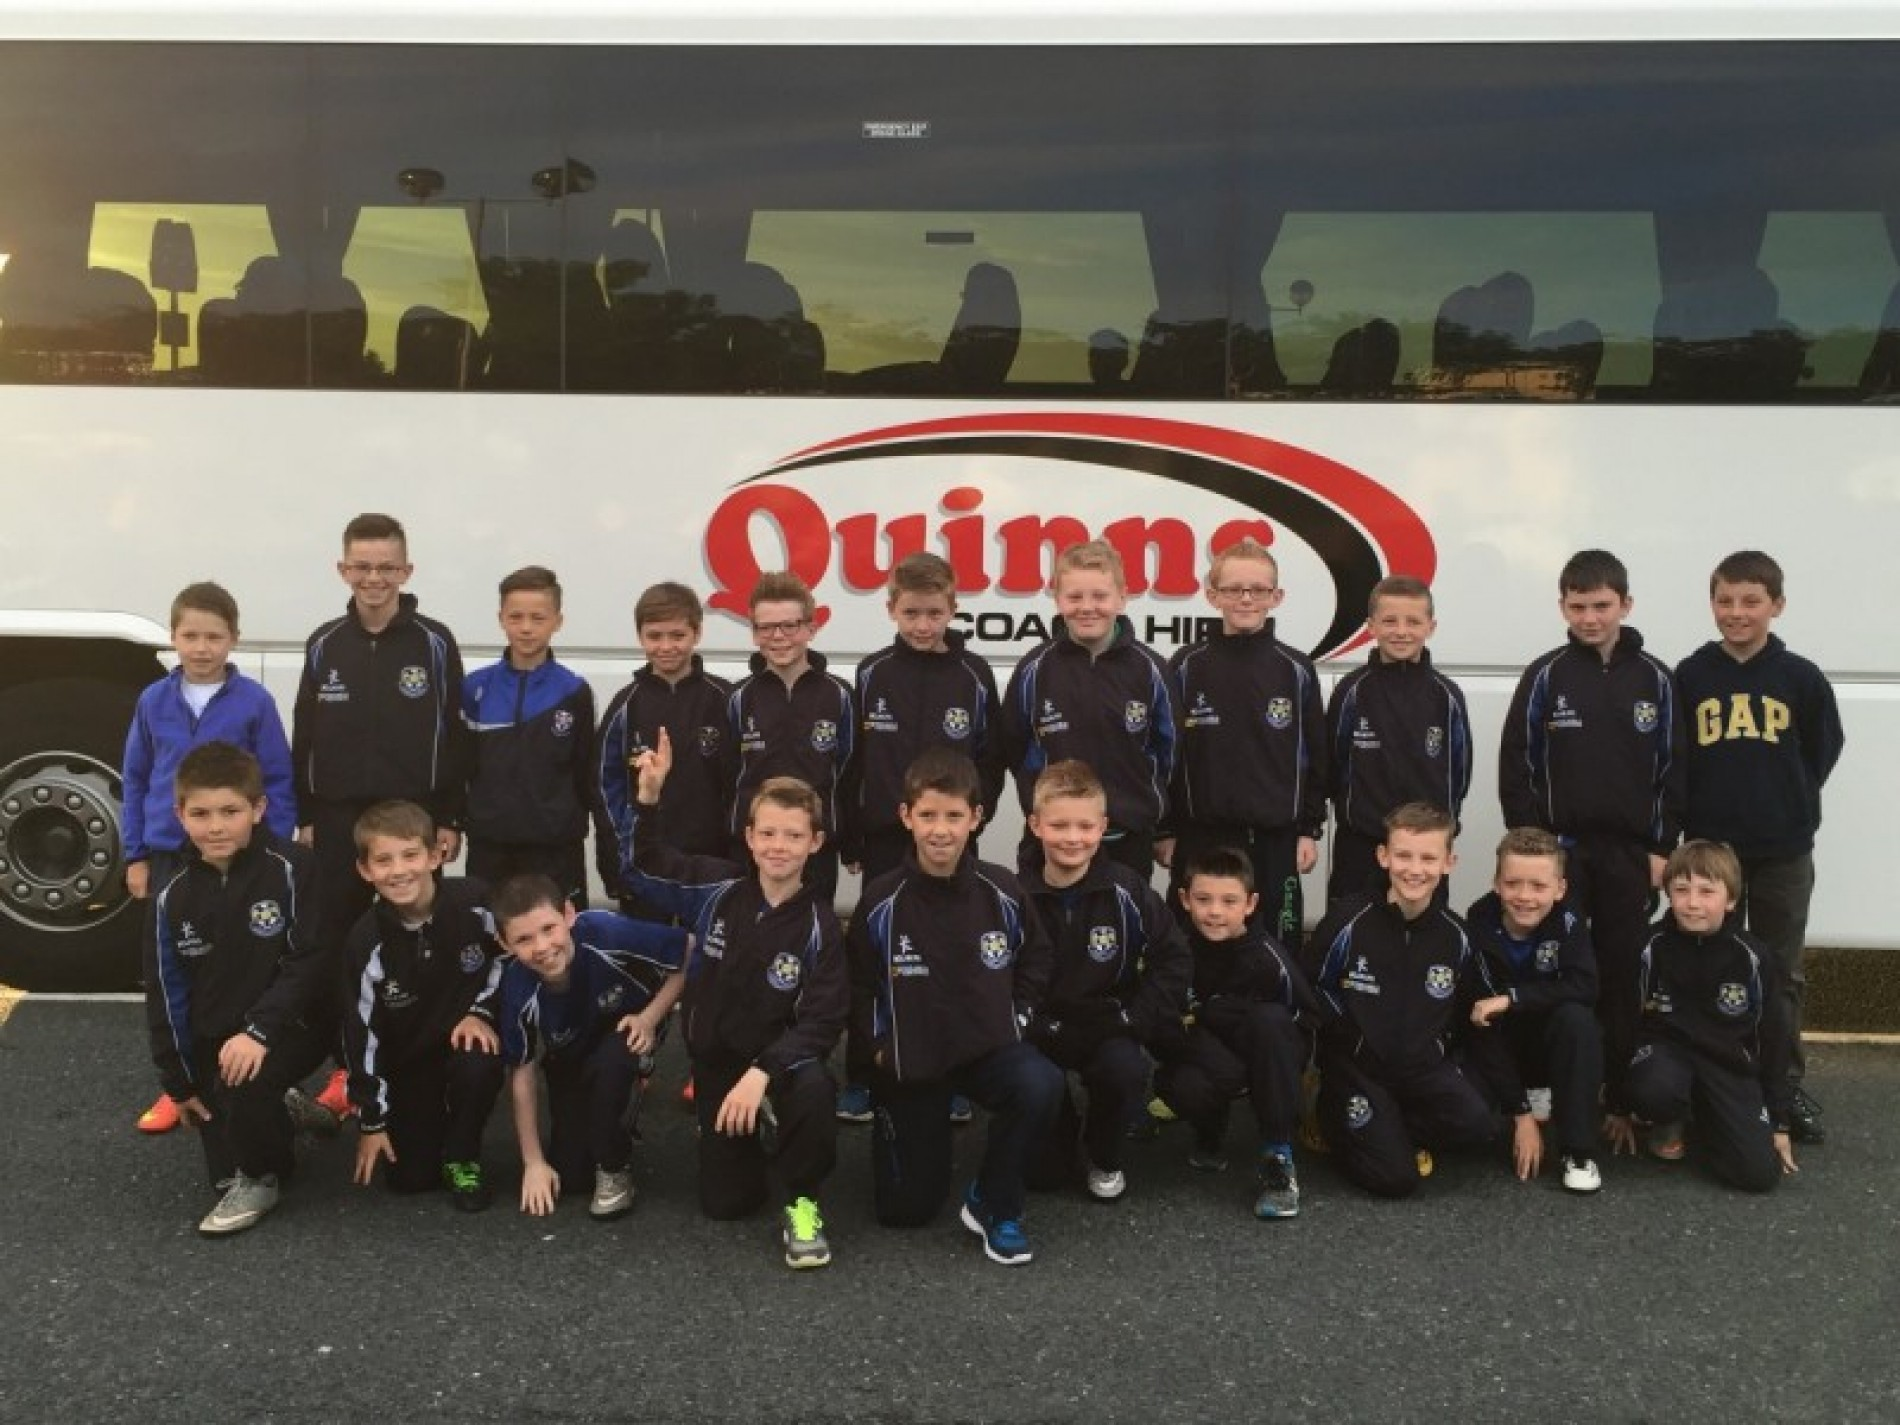 CYFC 11s TRAVEL TO THE GLASGOW RANGERS TRAINING GROUND